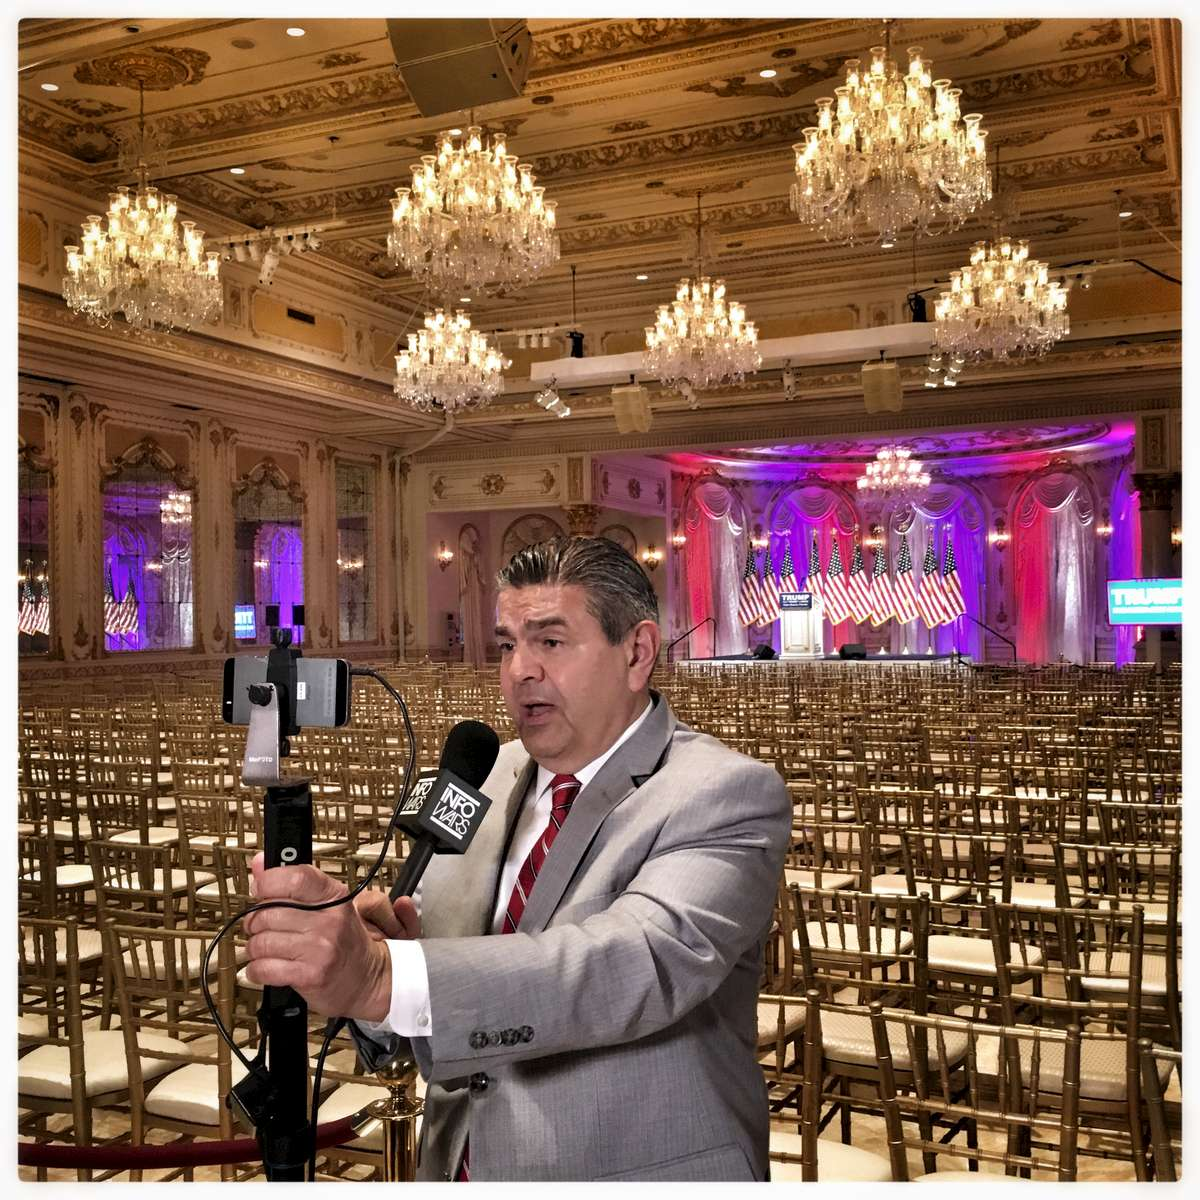 Media  inside  the Donald J. Trump Ballroom at the Mar-A-Lago Club' in Palm Beach,  where Republican presidential candidate Donald Trump spoke after the Florida primary.